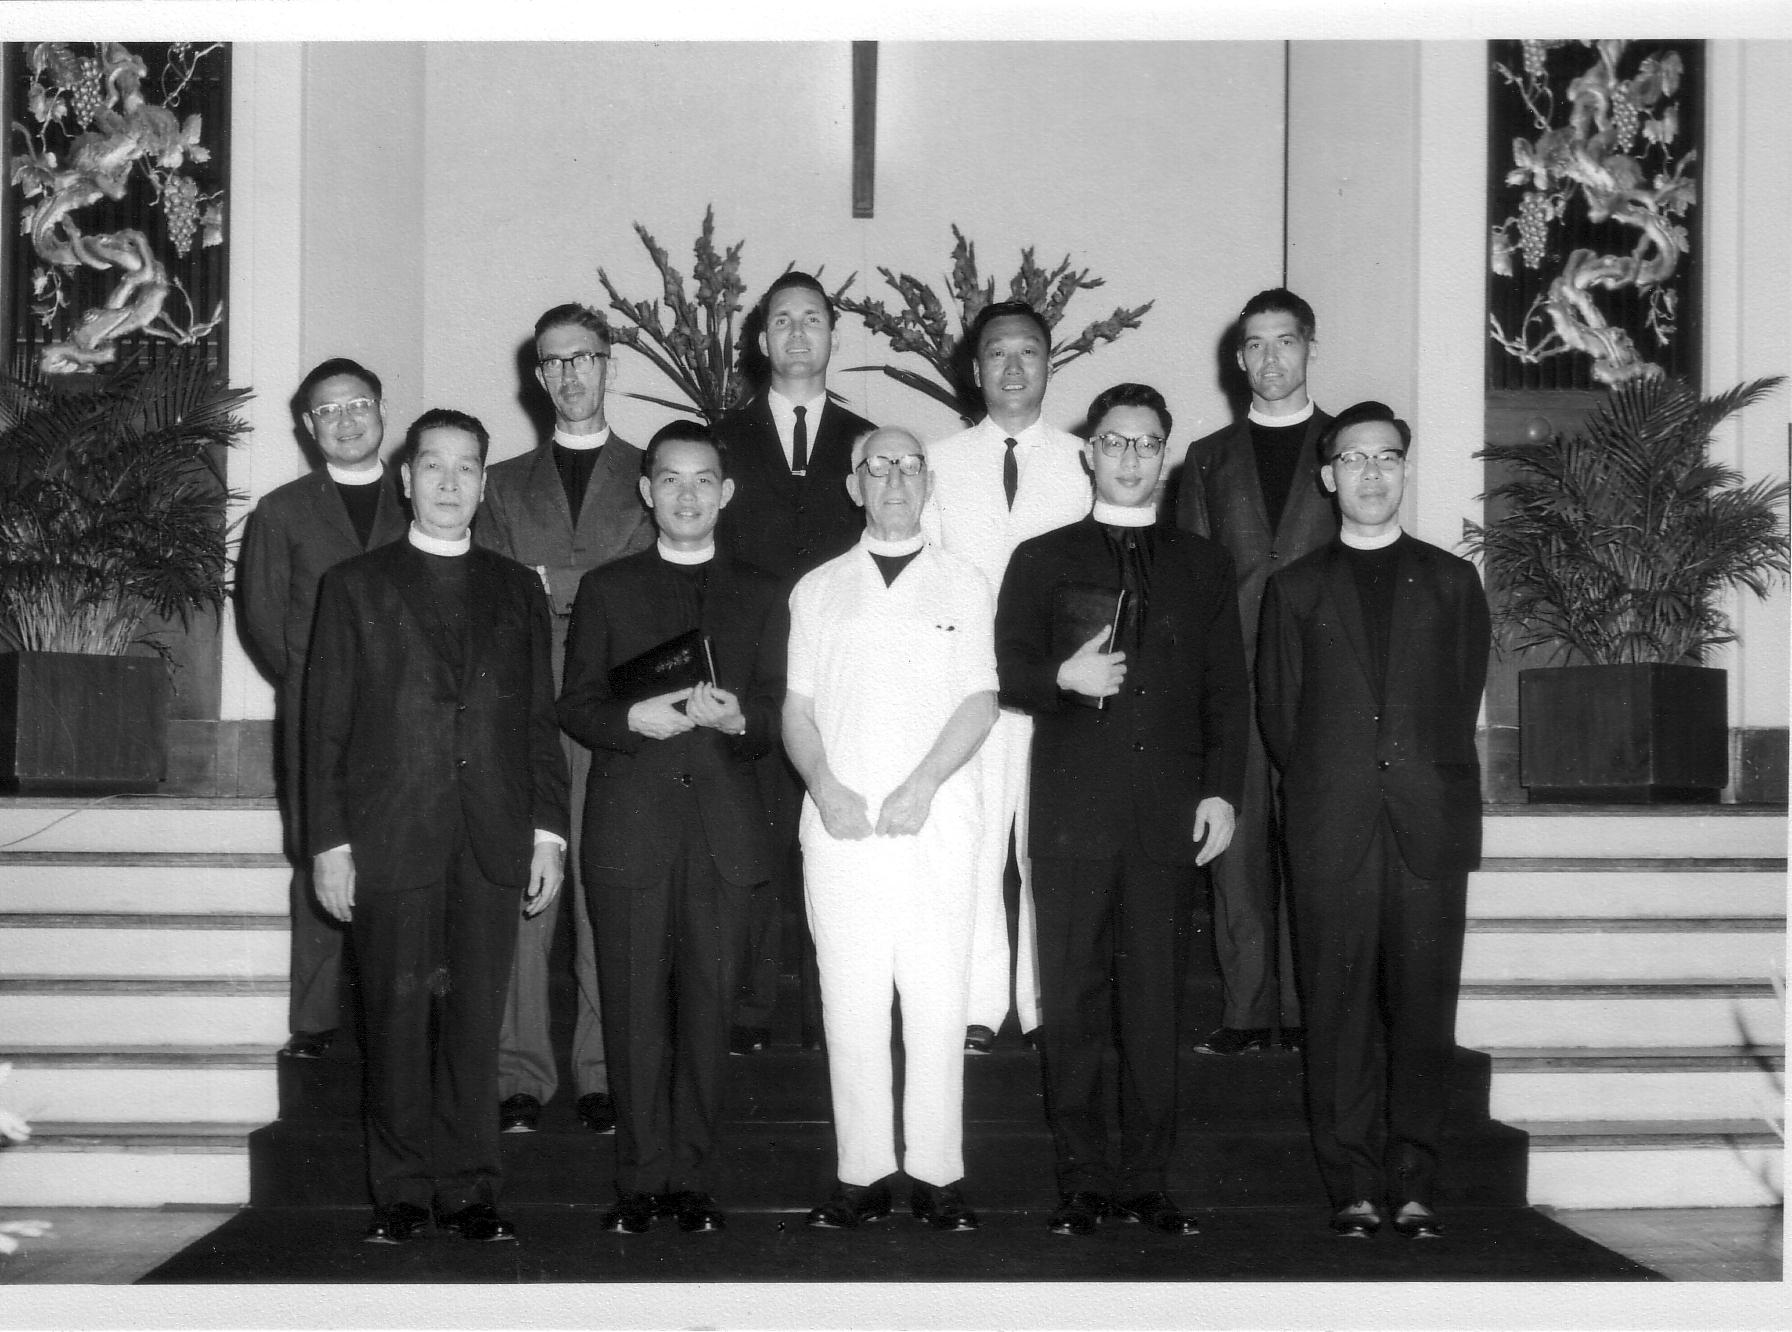 PJ.4 Clerical gathering at Kowloon Methodist Church, Hong Kong